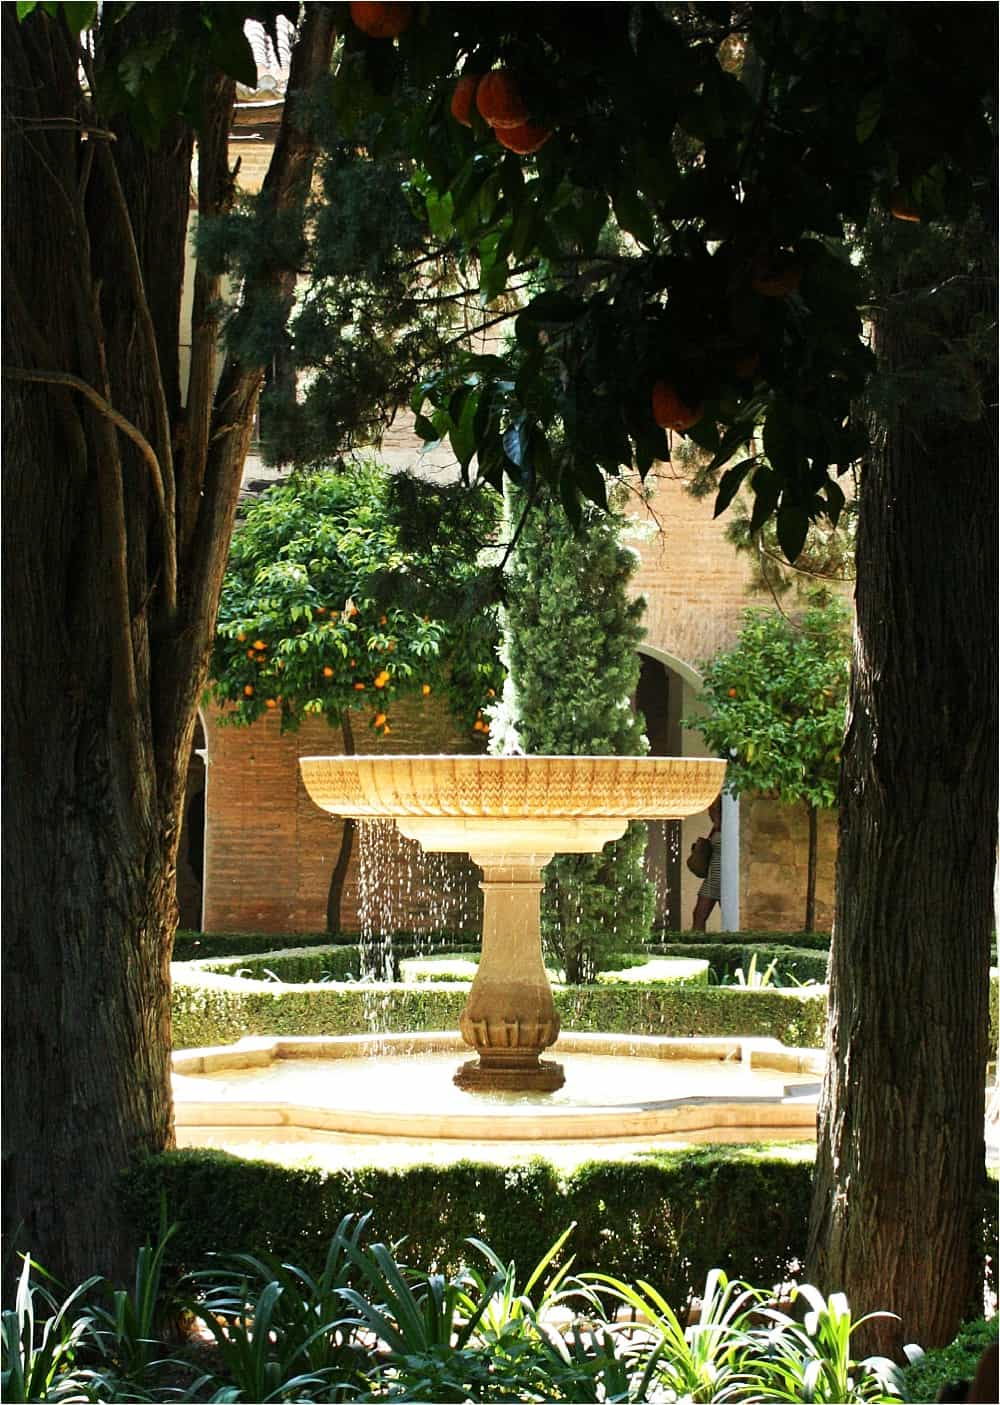 Alhambra Granada Spain Fountain and Water